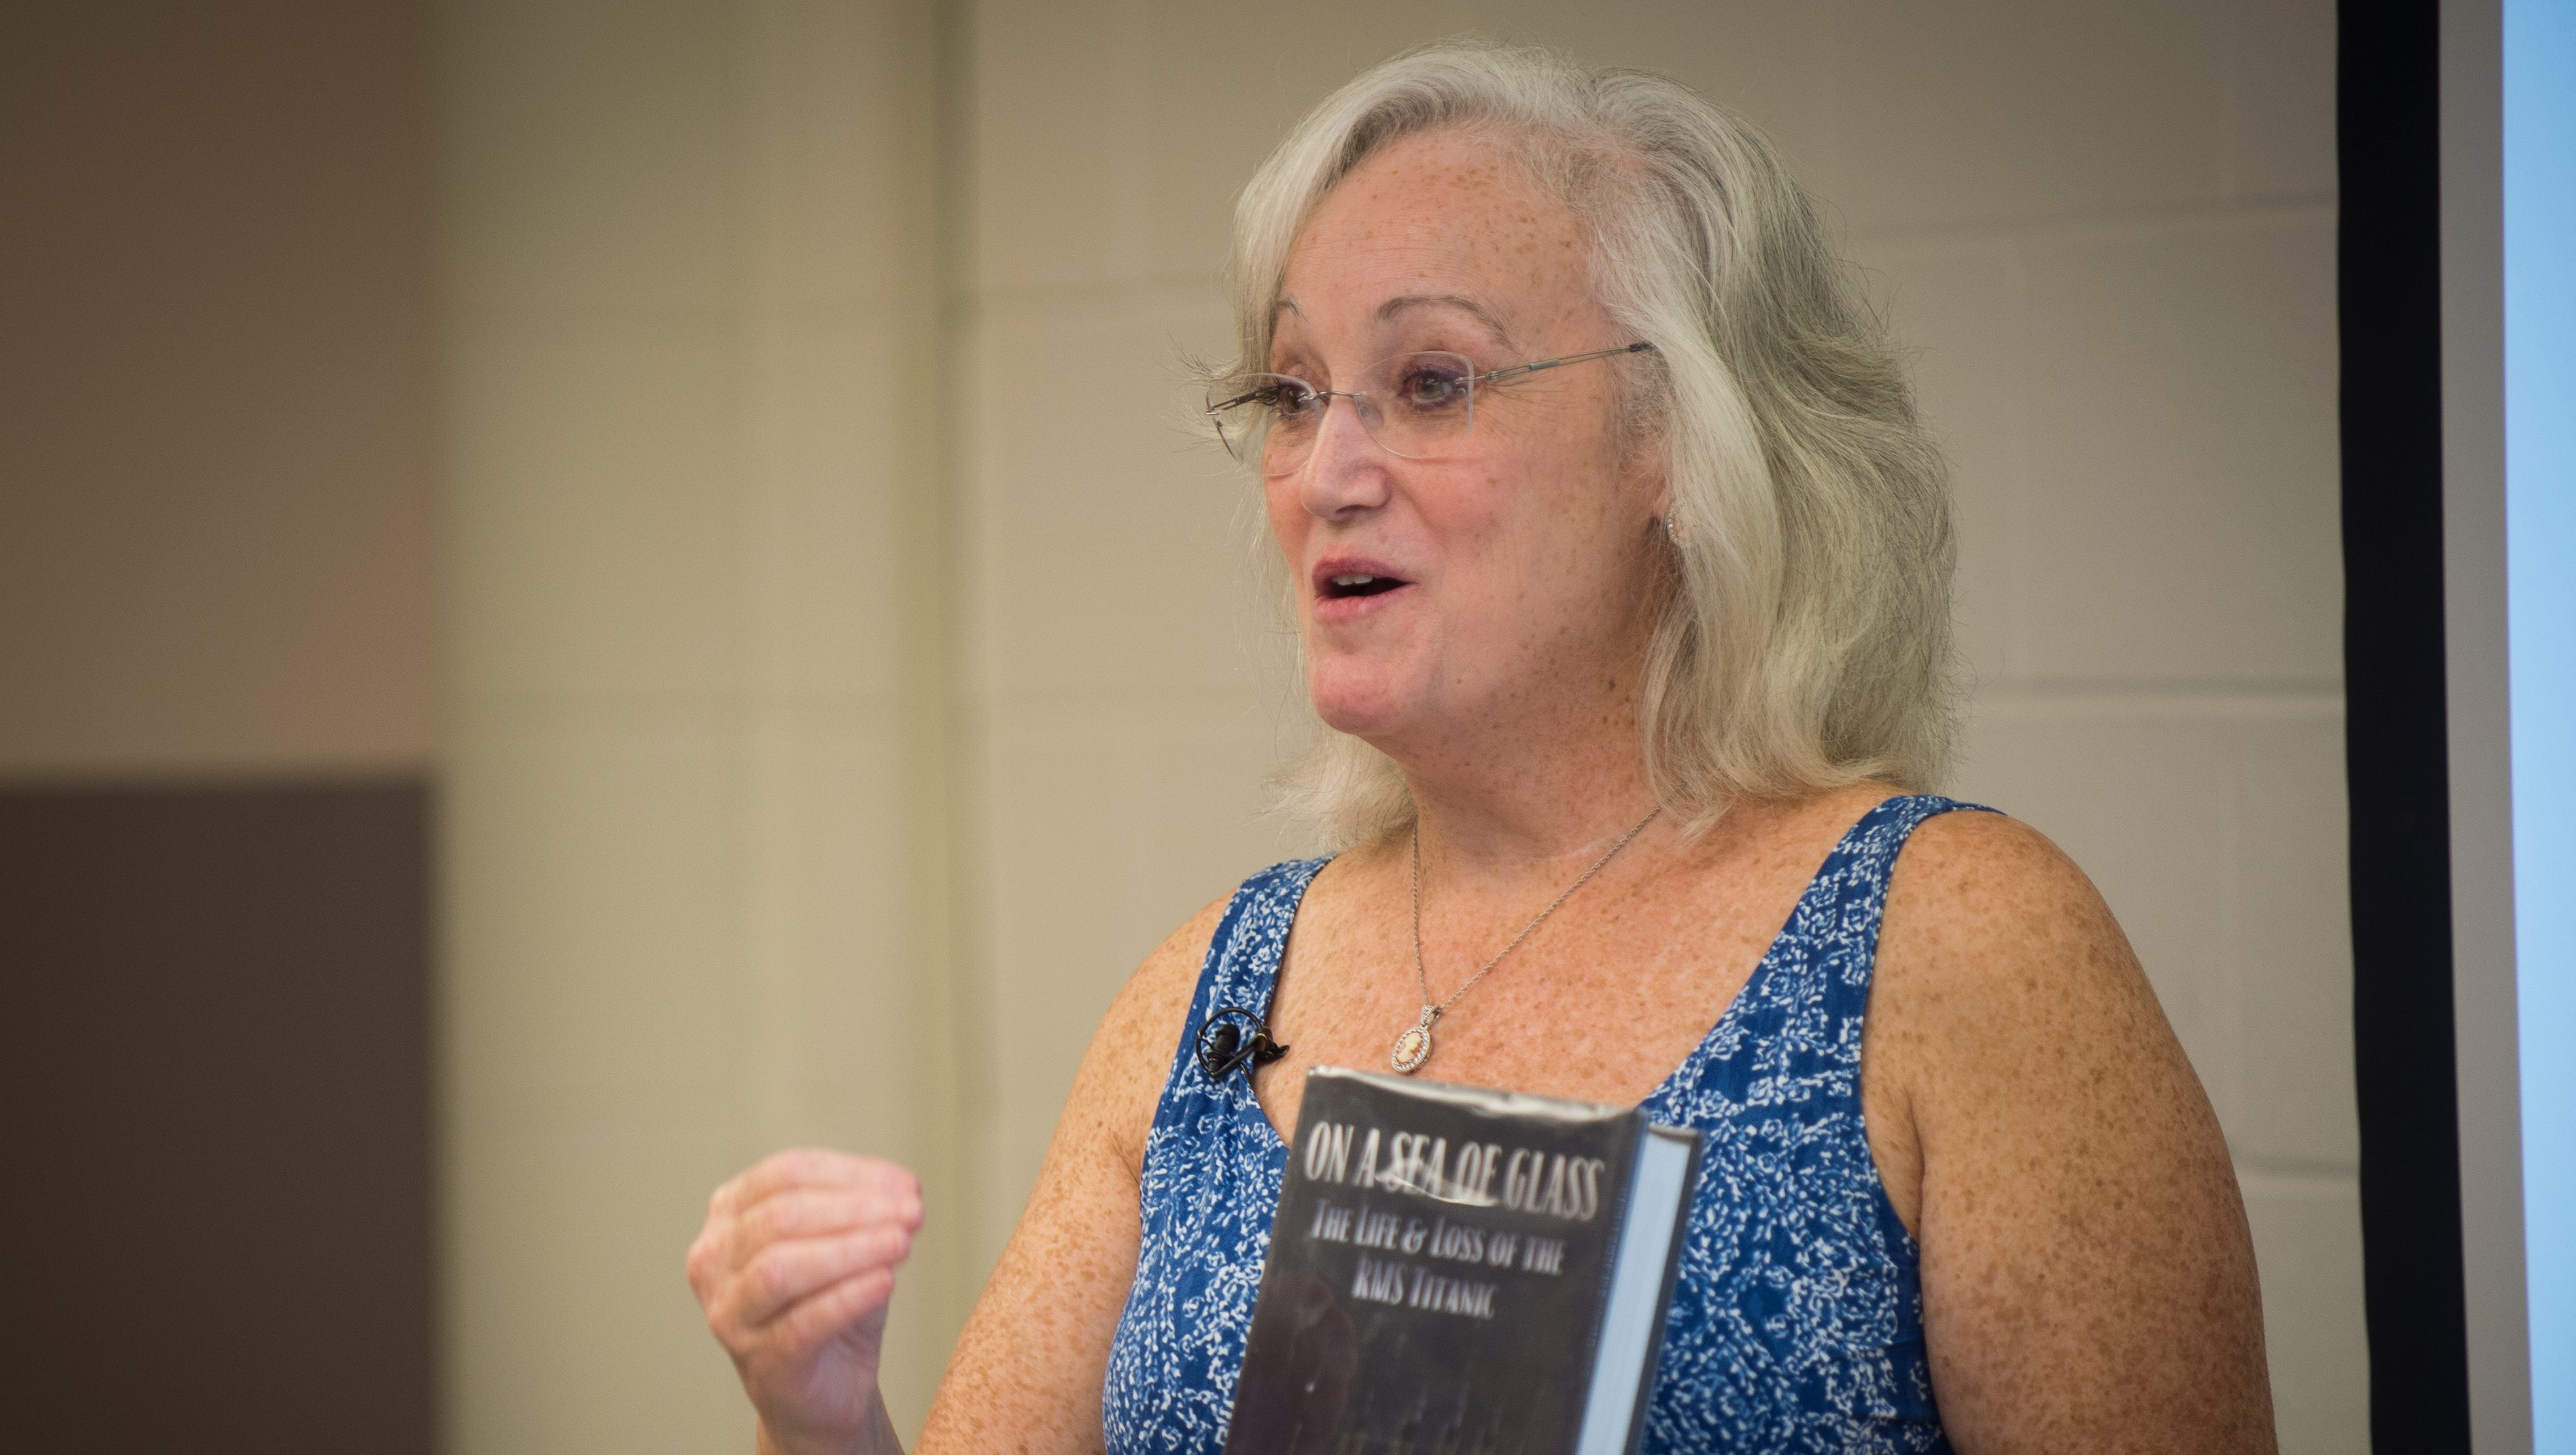 Descendant Of Titanic Survivors Teaches Class At University Of Tennessee On Ship Disaster